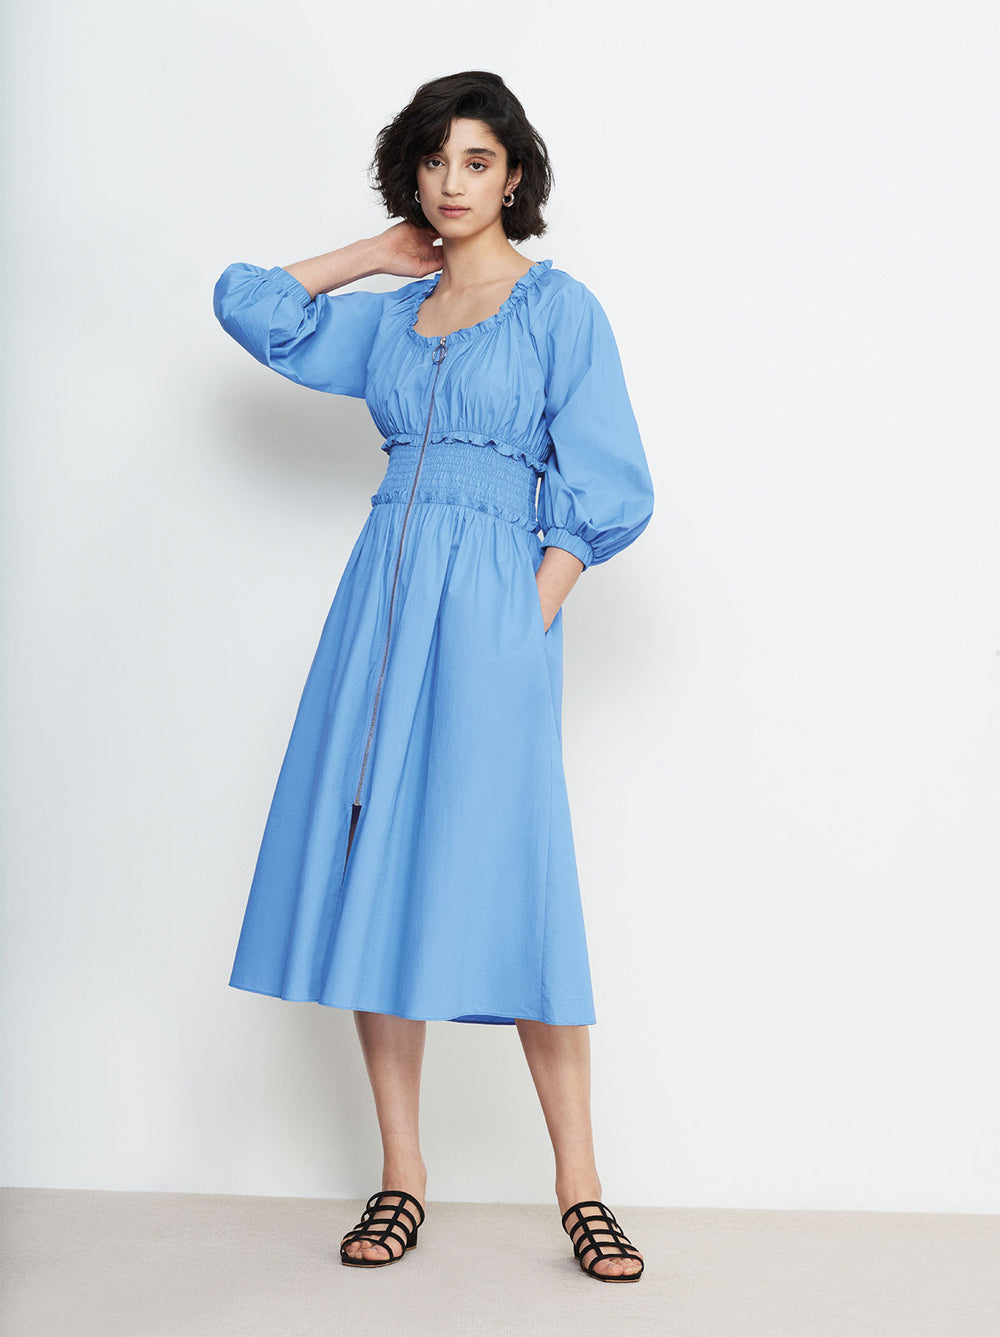 Athena Blue Smocked Waist Shirt Dress by KITRI Studio